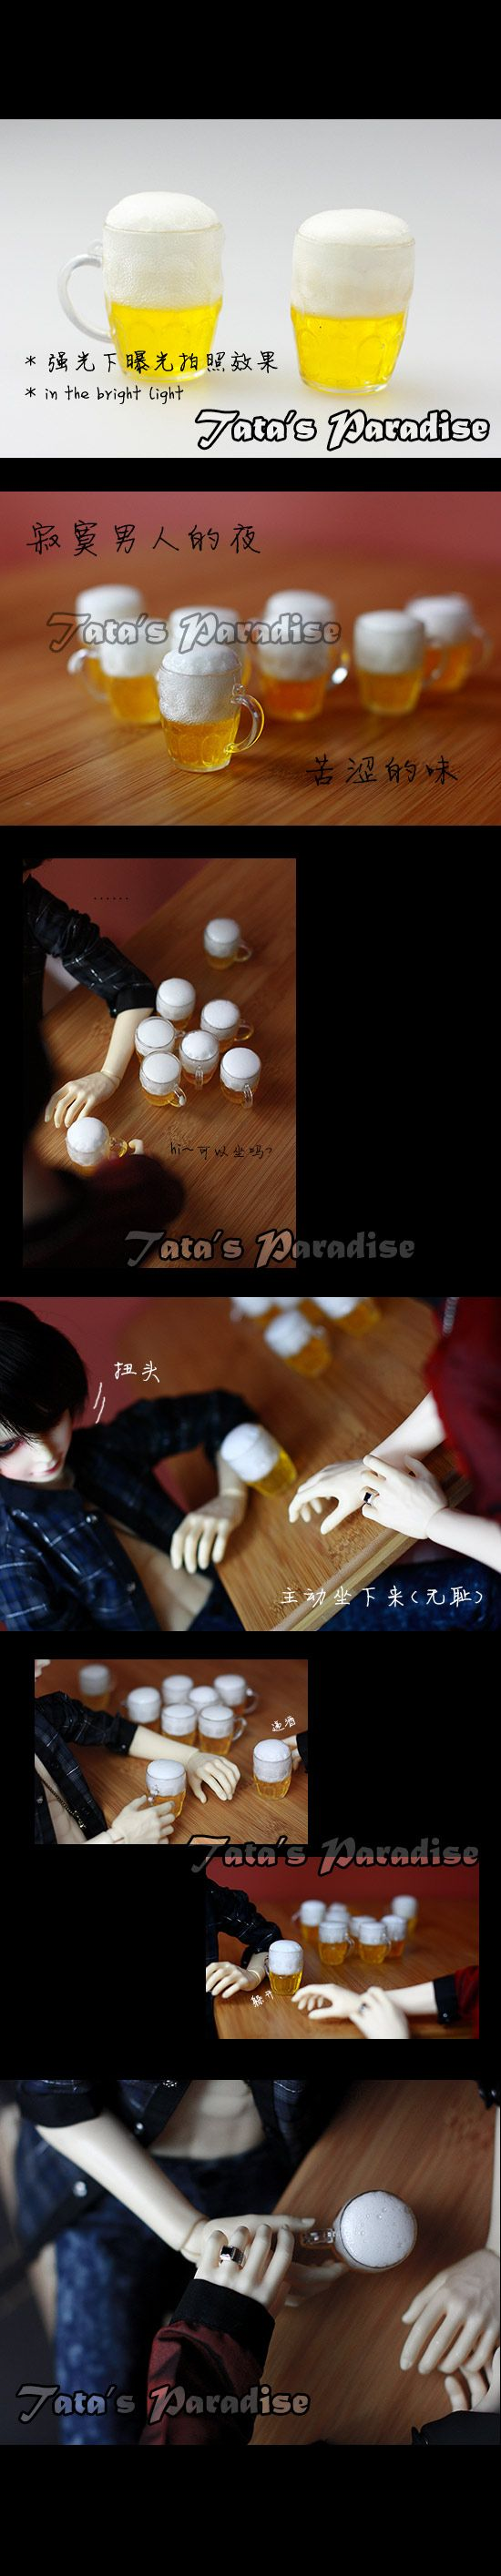 LIM109 Beer cup_TA·ACCESSORIES_TATA'S PARADISE